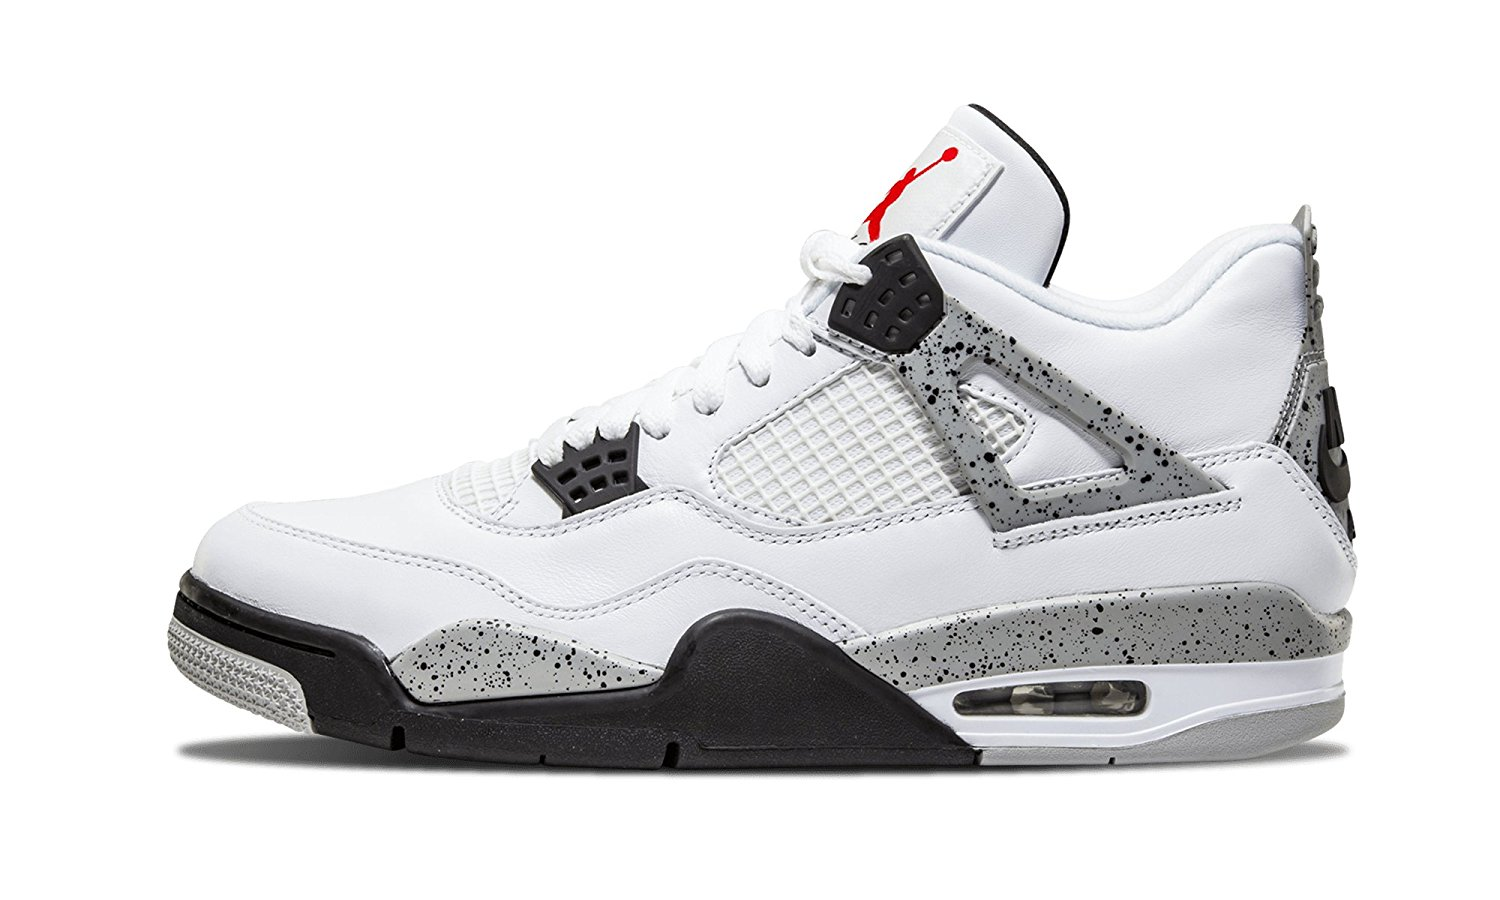 Men's Nike Air Jordan 4 Retro OG - 18 - 840606 192